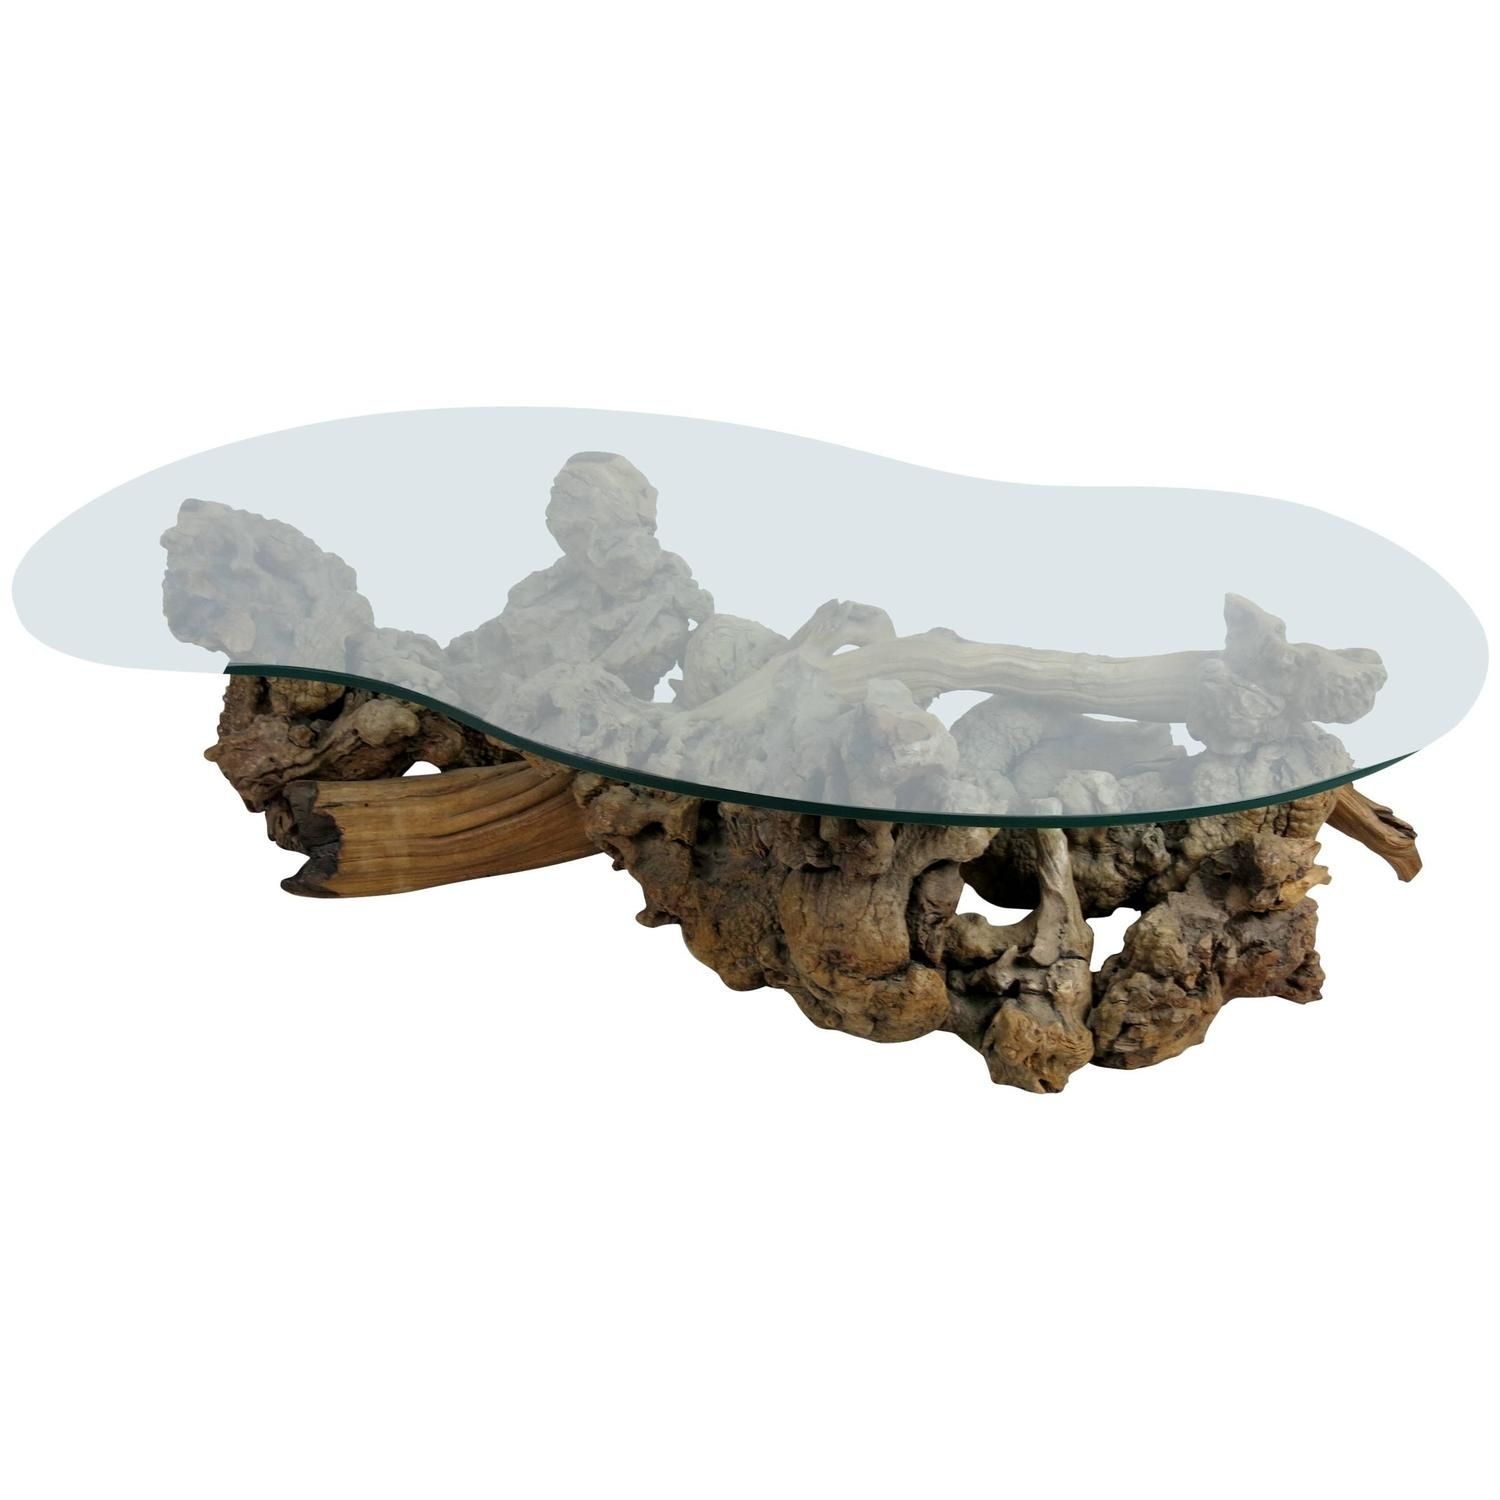 Root Burl Driftwood Coffee Table with Free Form Glass Top